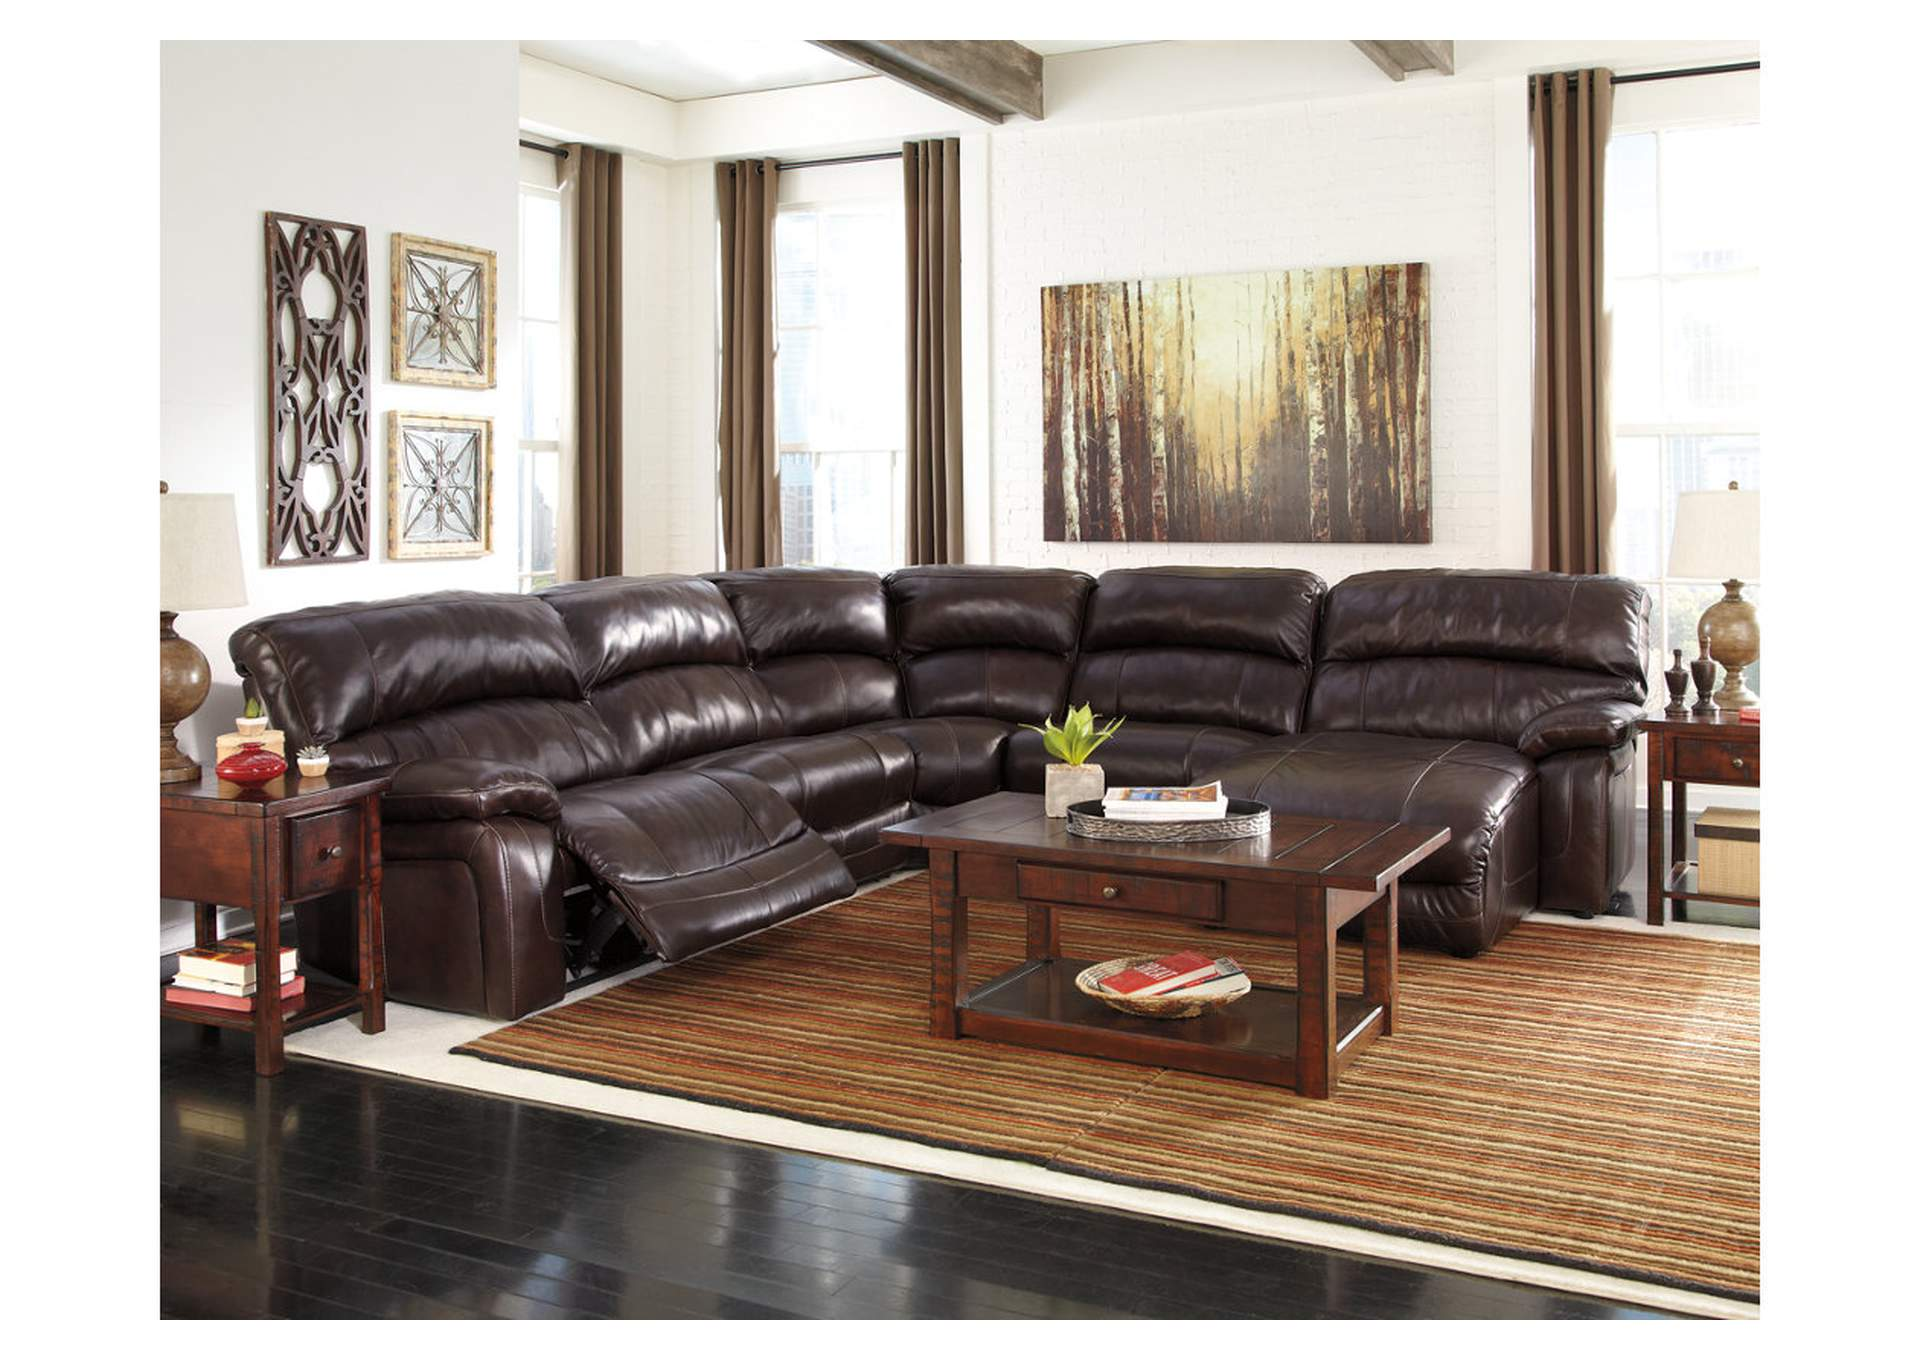 Austin 39 S Couch Potatoes Furniture Stores Austin Texas Damacio Dark Brown Reclining Right